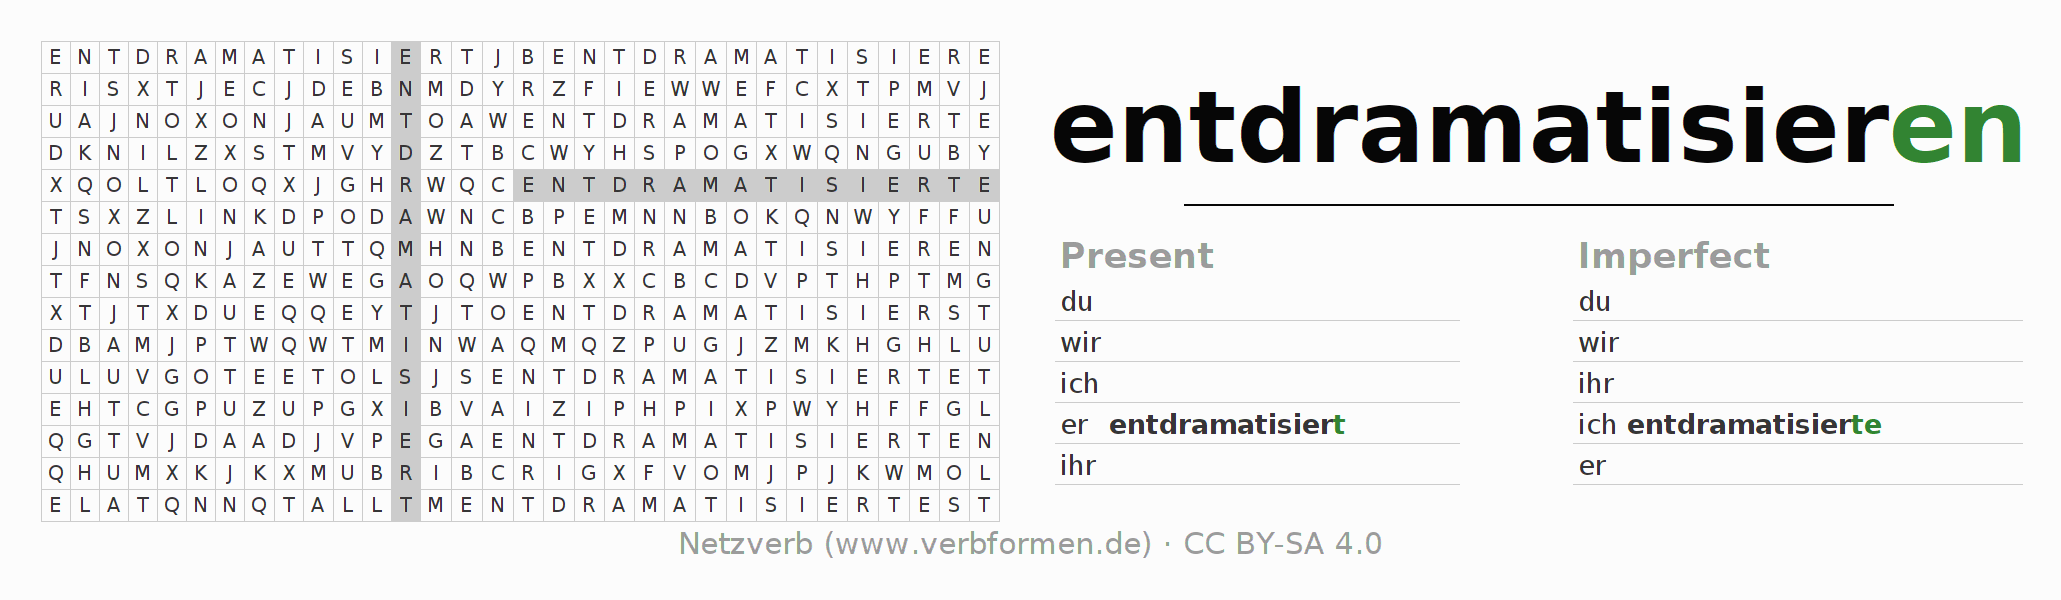 Word search puzzle for the conjugation of the verb entdramatisieren